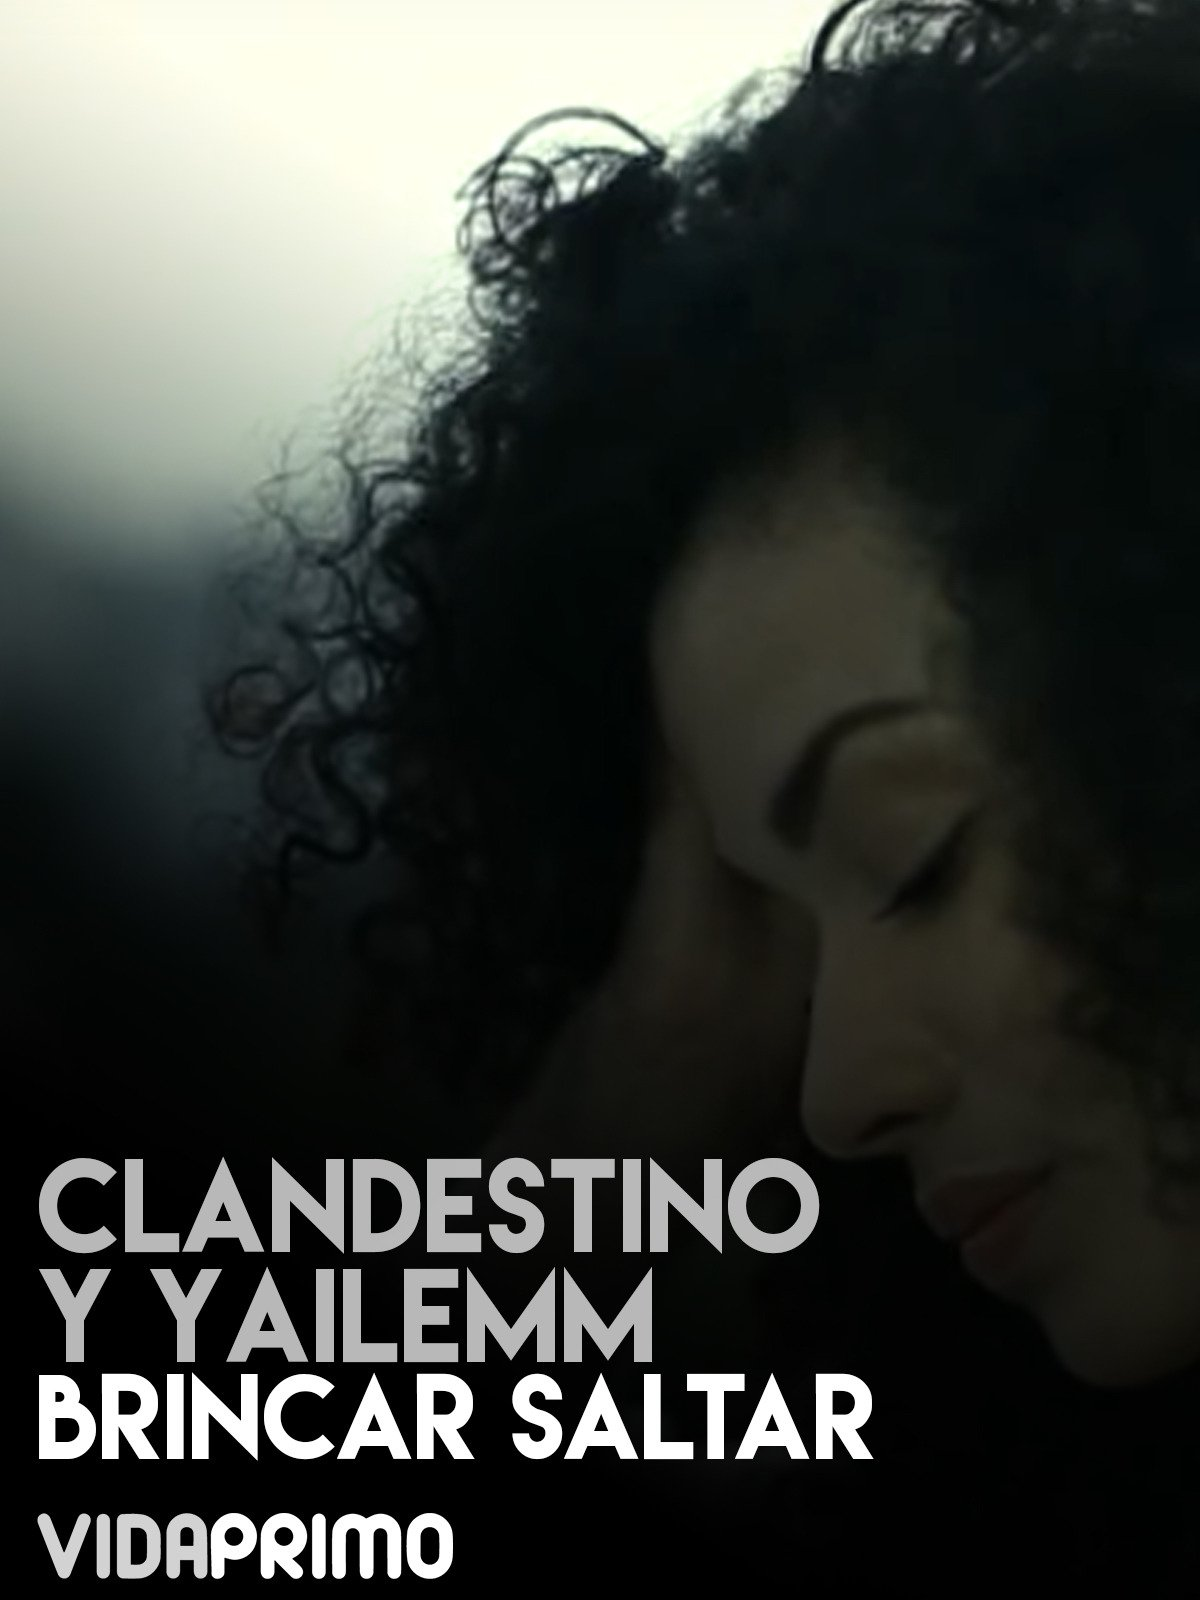 Clandestino y Yailemm- Brincar Saltar on Amazon Prime Instant Video UK